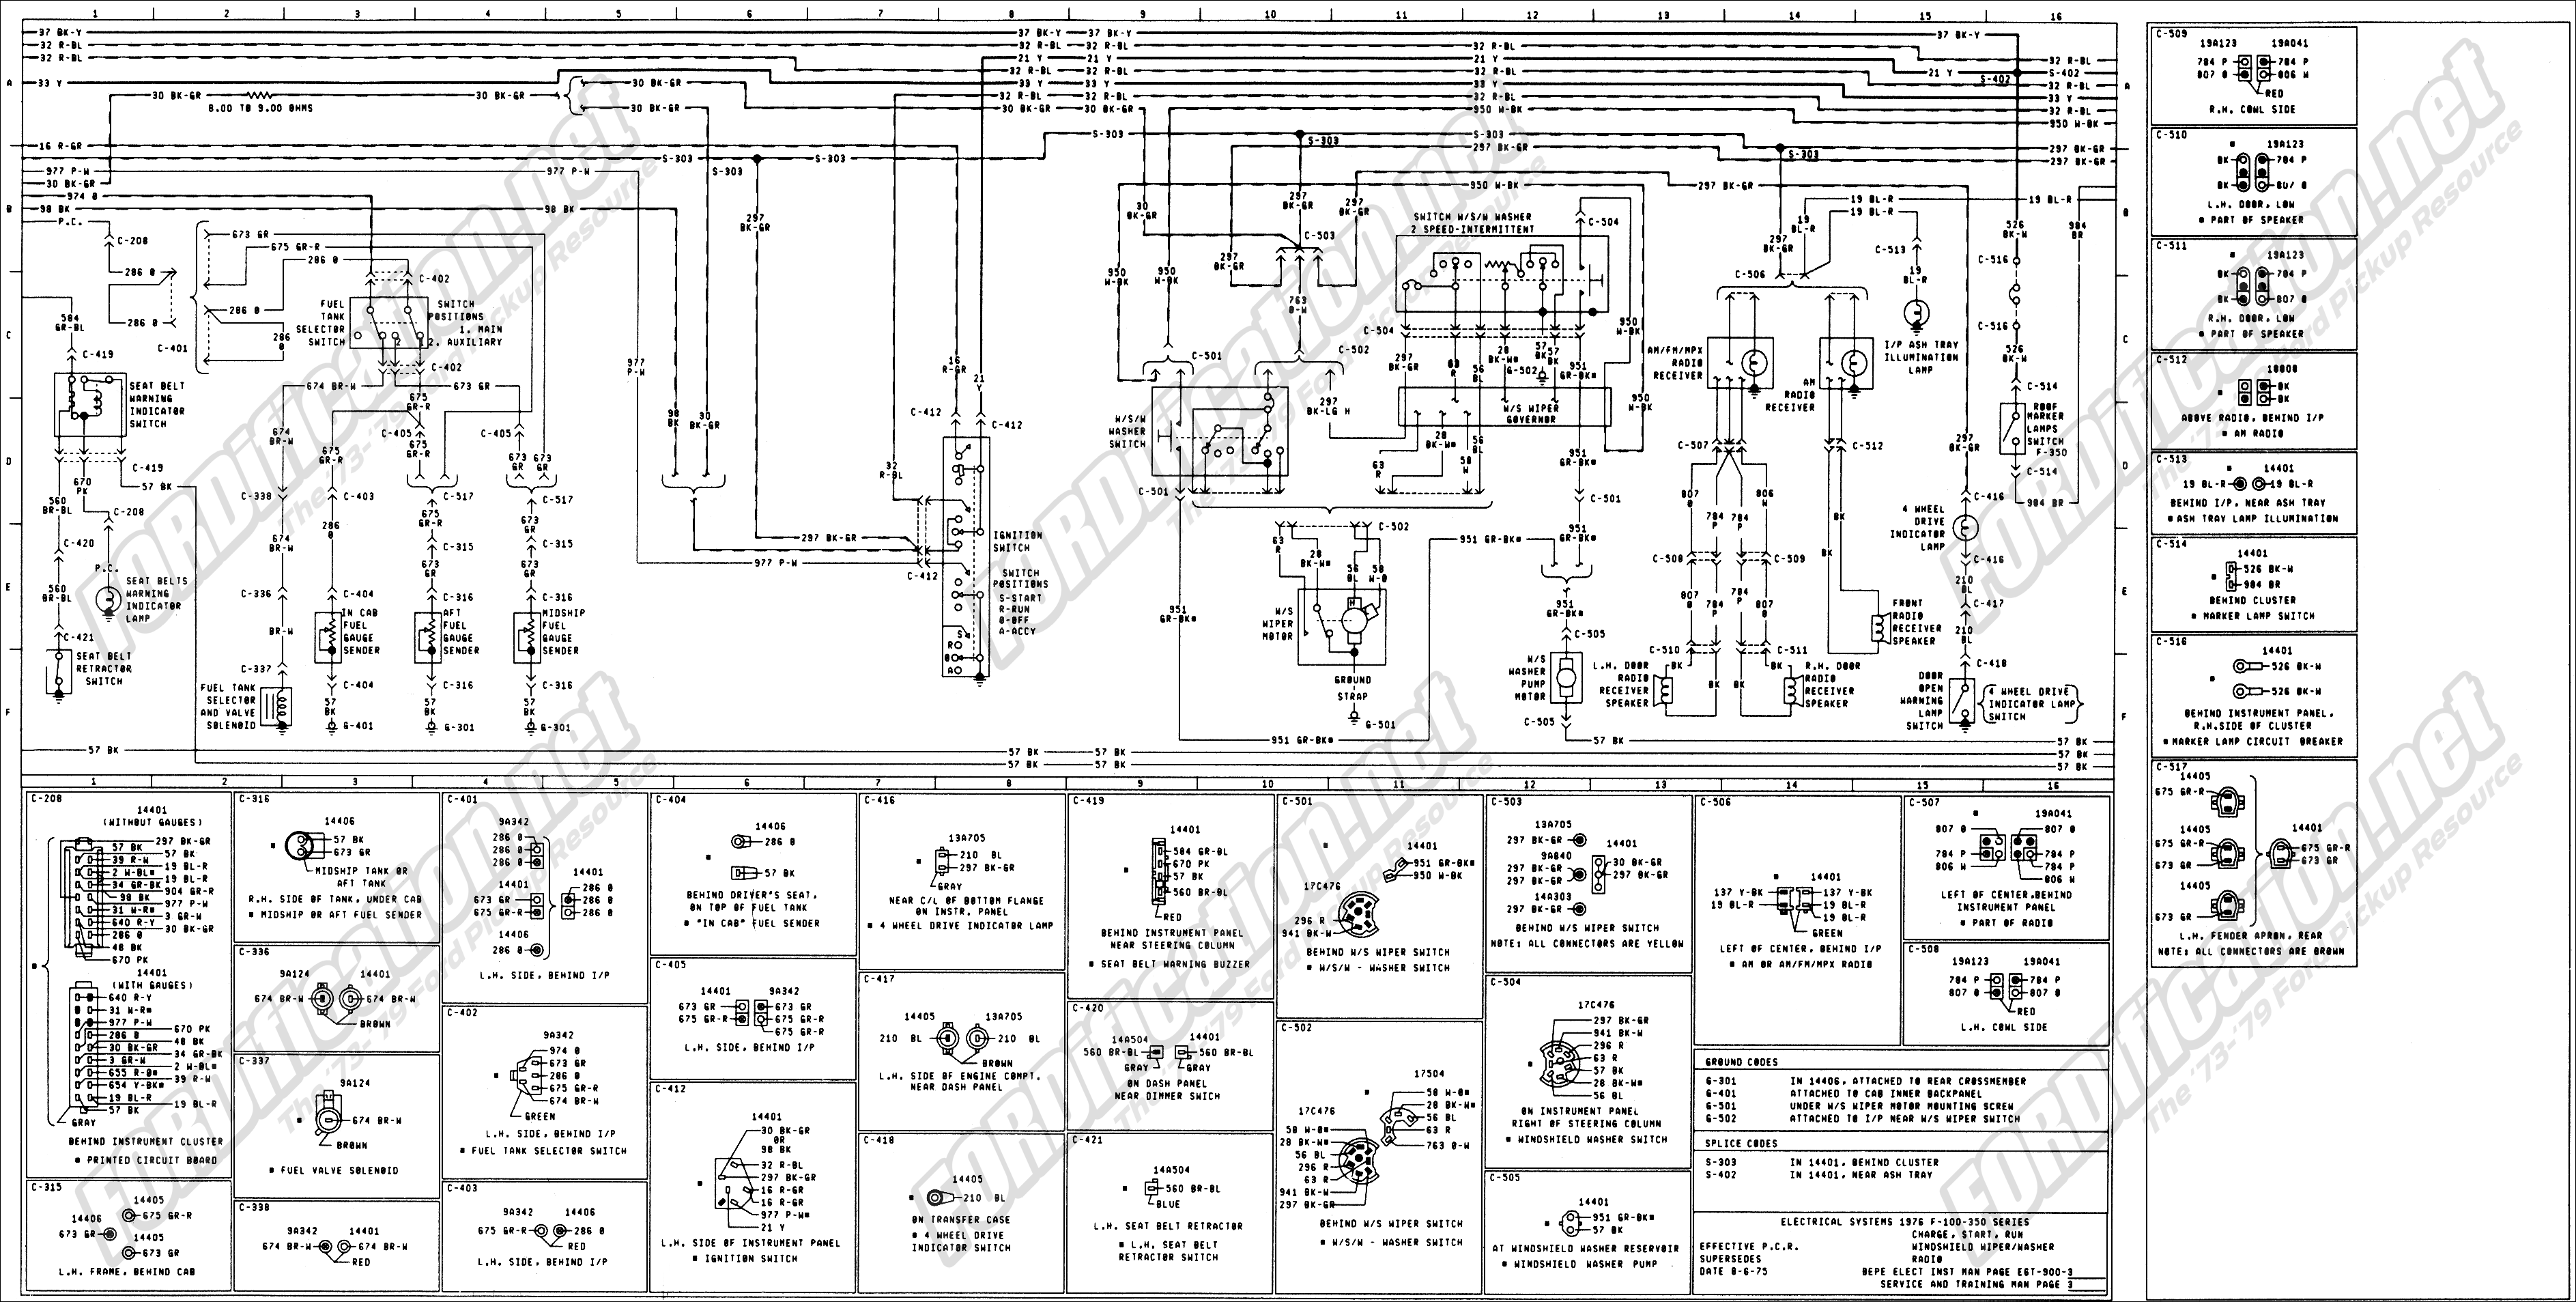 wiring_76master_3of9 1973 1979 ford truck wiring diagrams & schematics fordification net 2004 ford f250 wiring diagram at soozxer.org